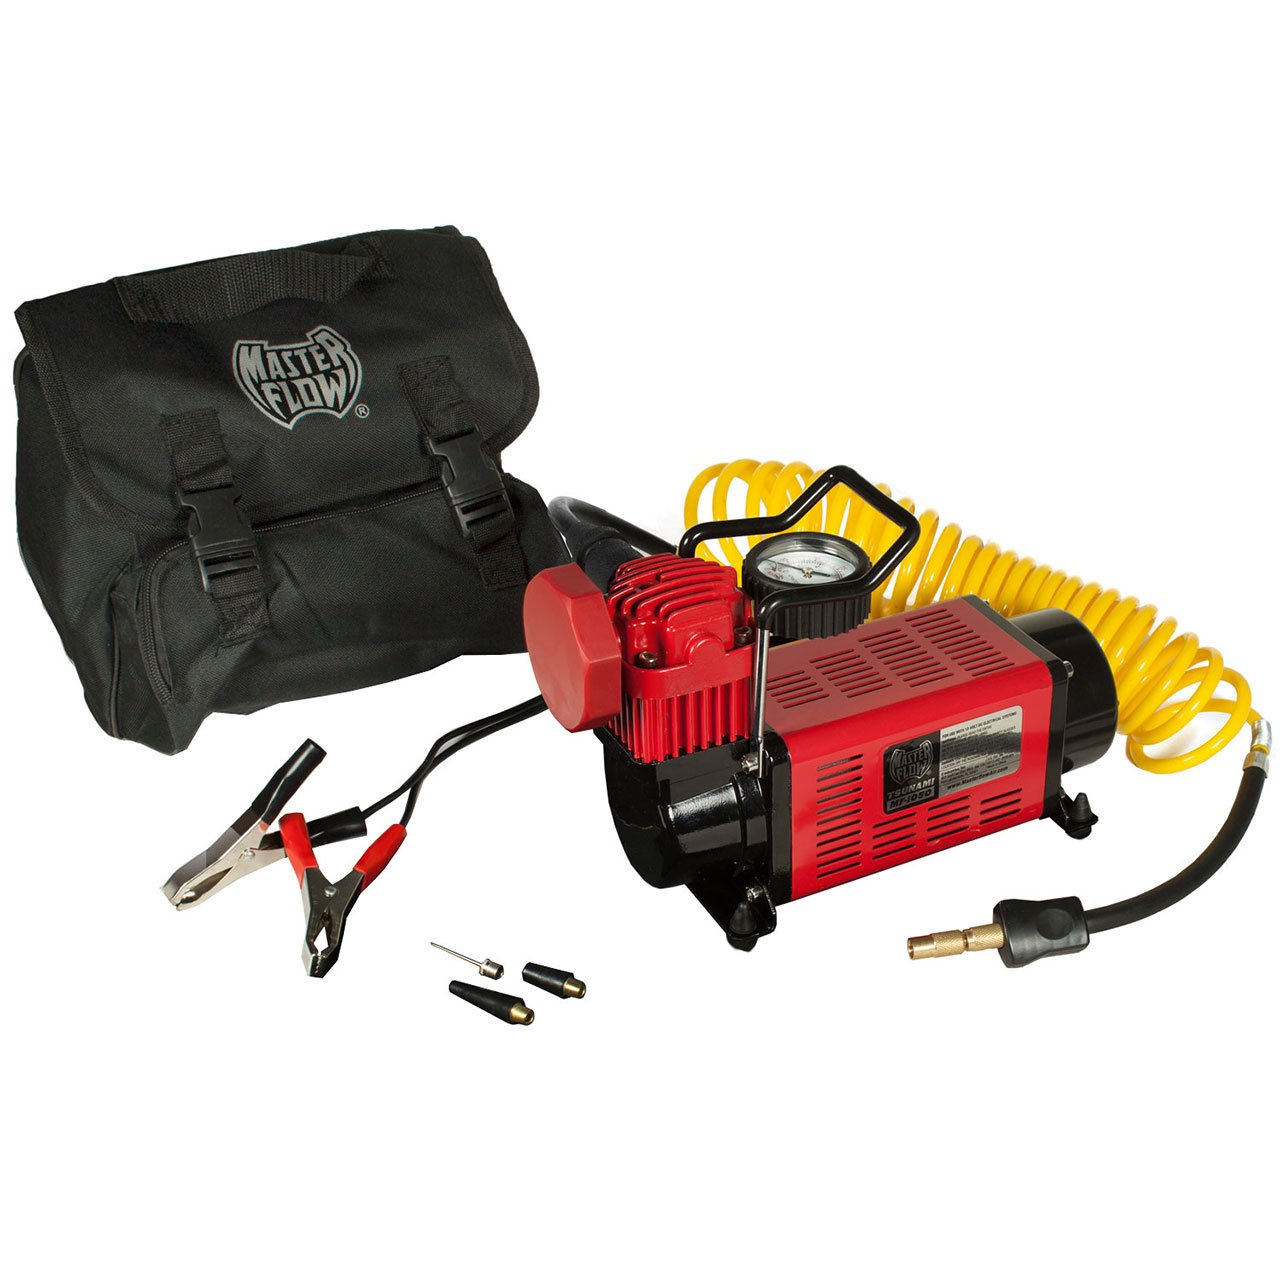 Master Flow MF-1050 Tire Inflator by Master Flow (Image #5)